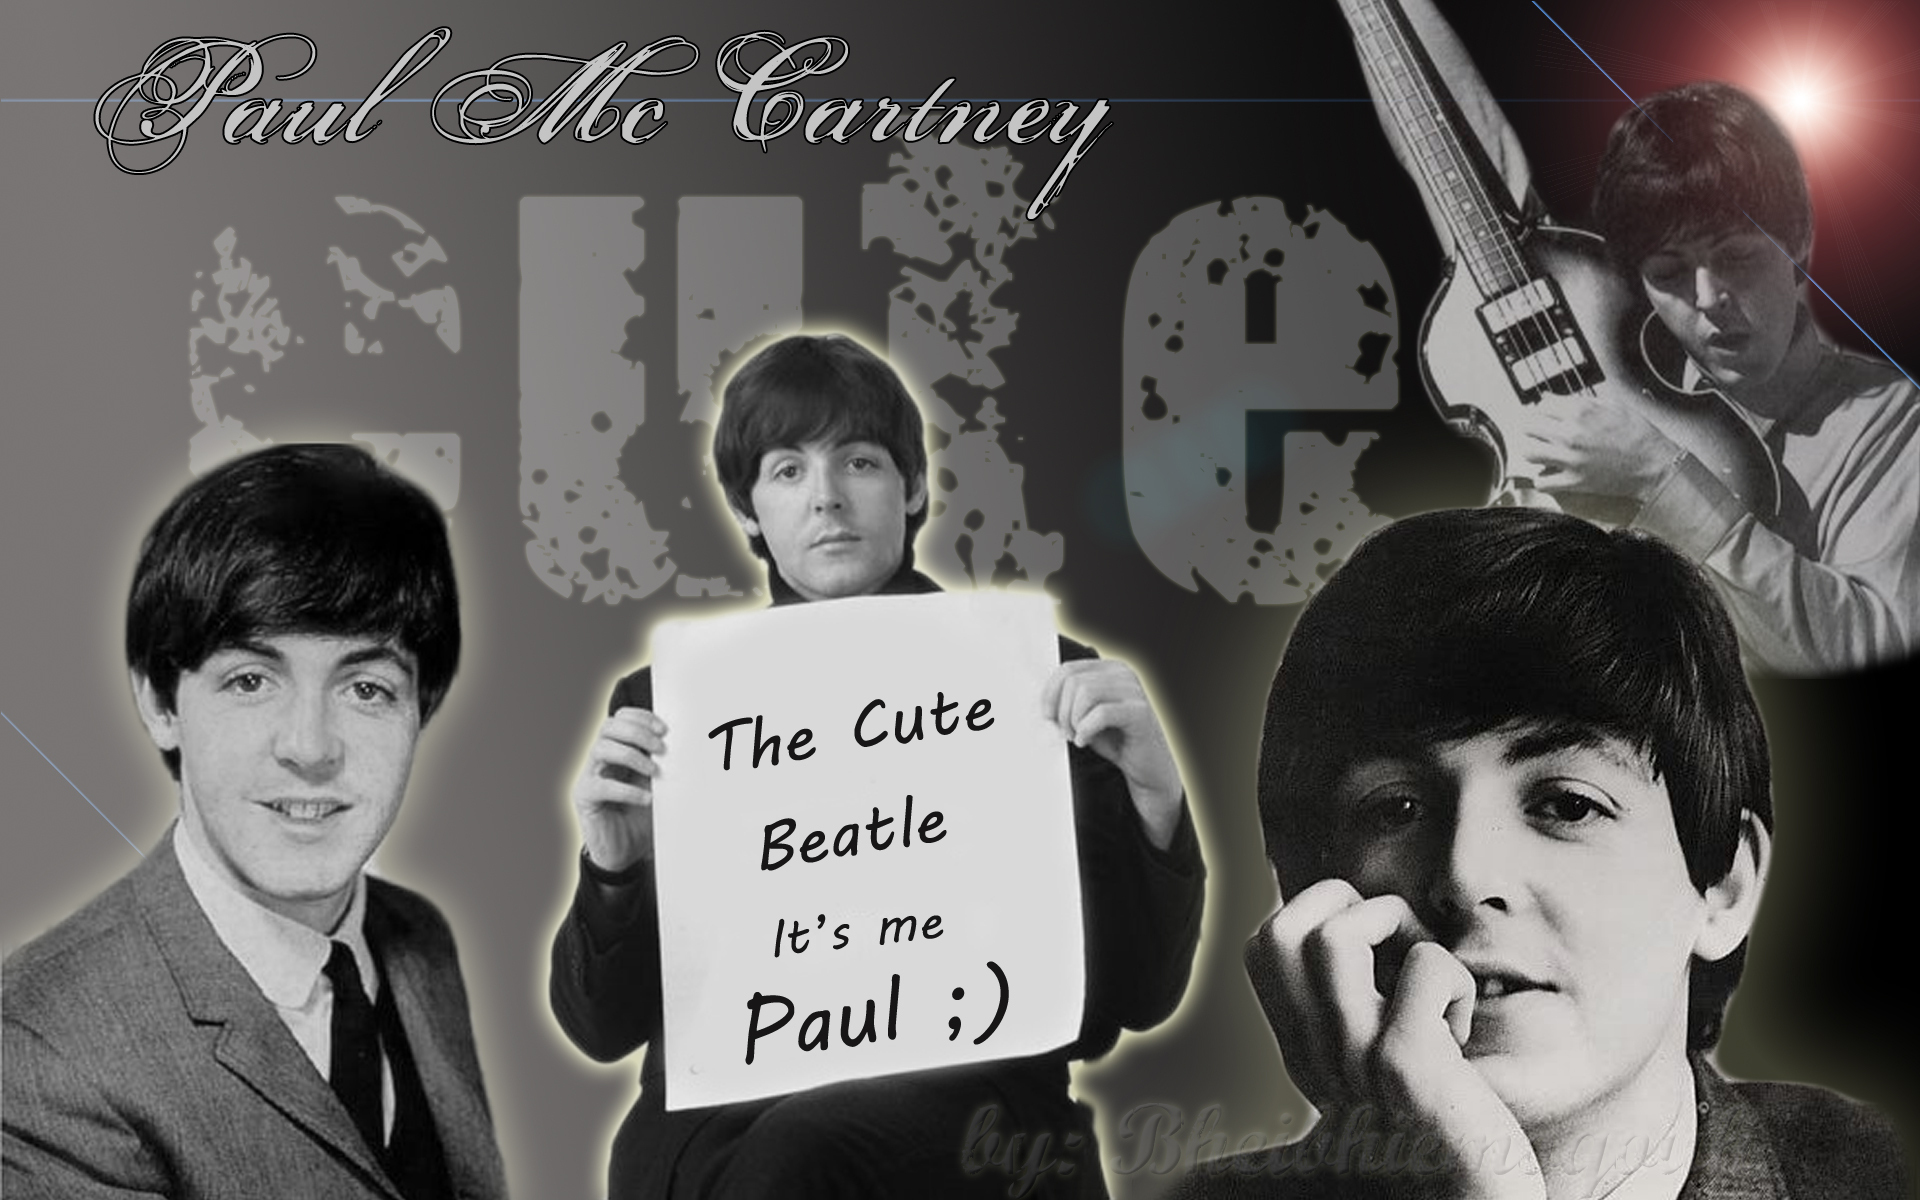 Edited Pictures - The Beatles Wallpaper (19062852) - Fanpop